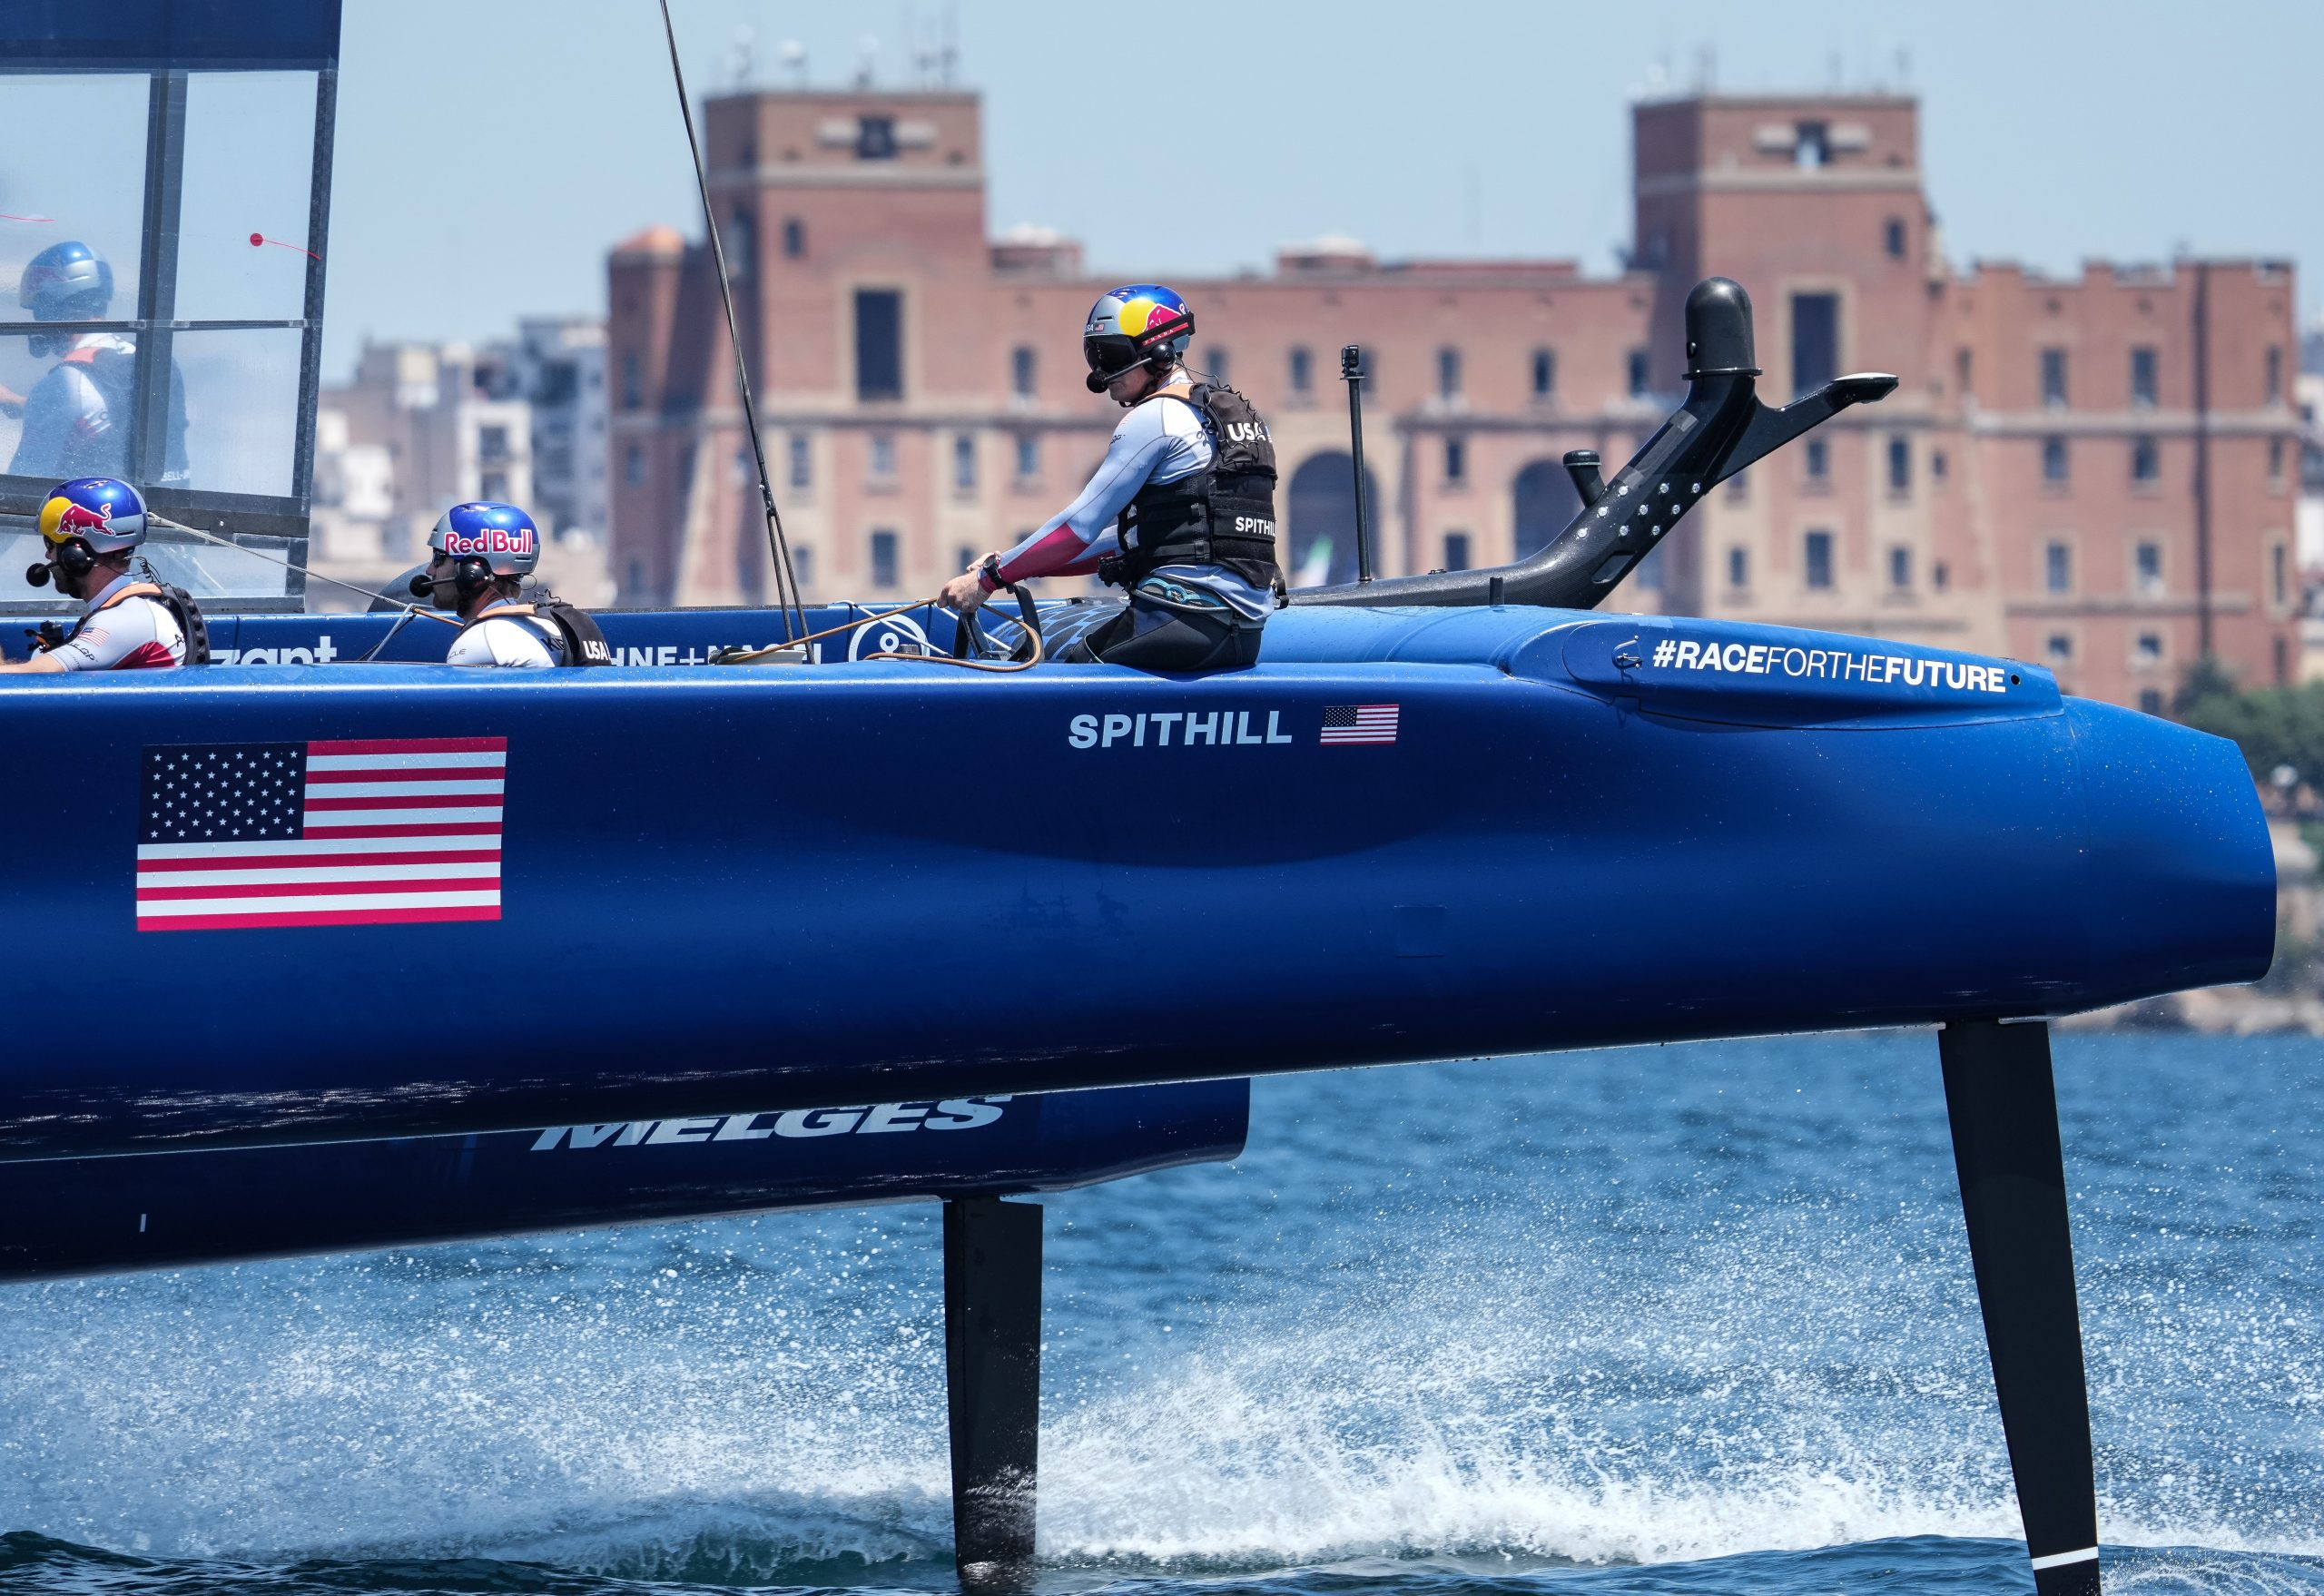 Team USA skippered by Spithill